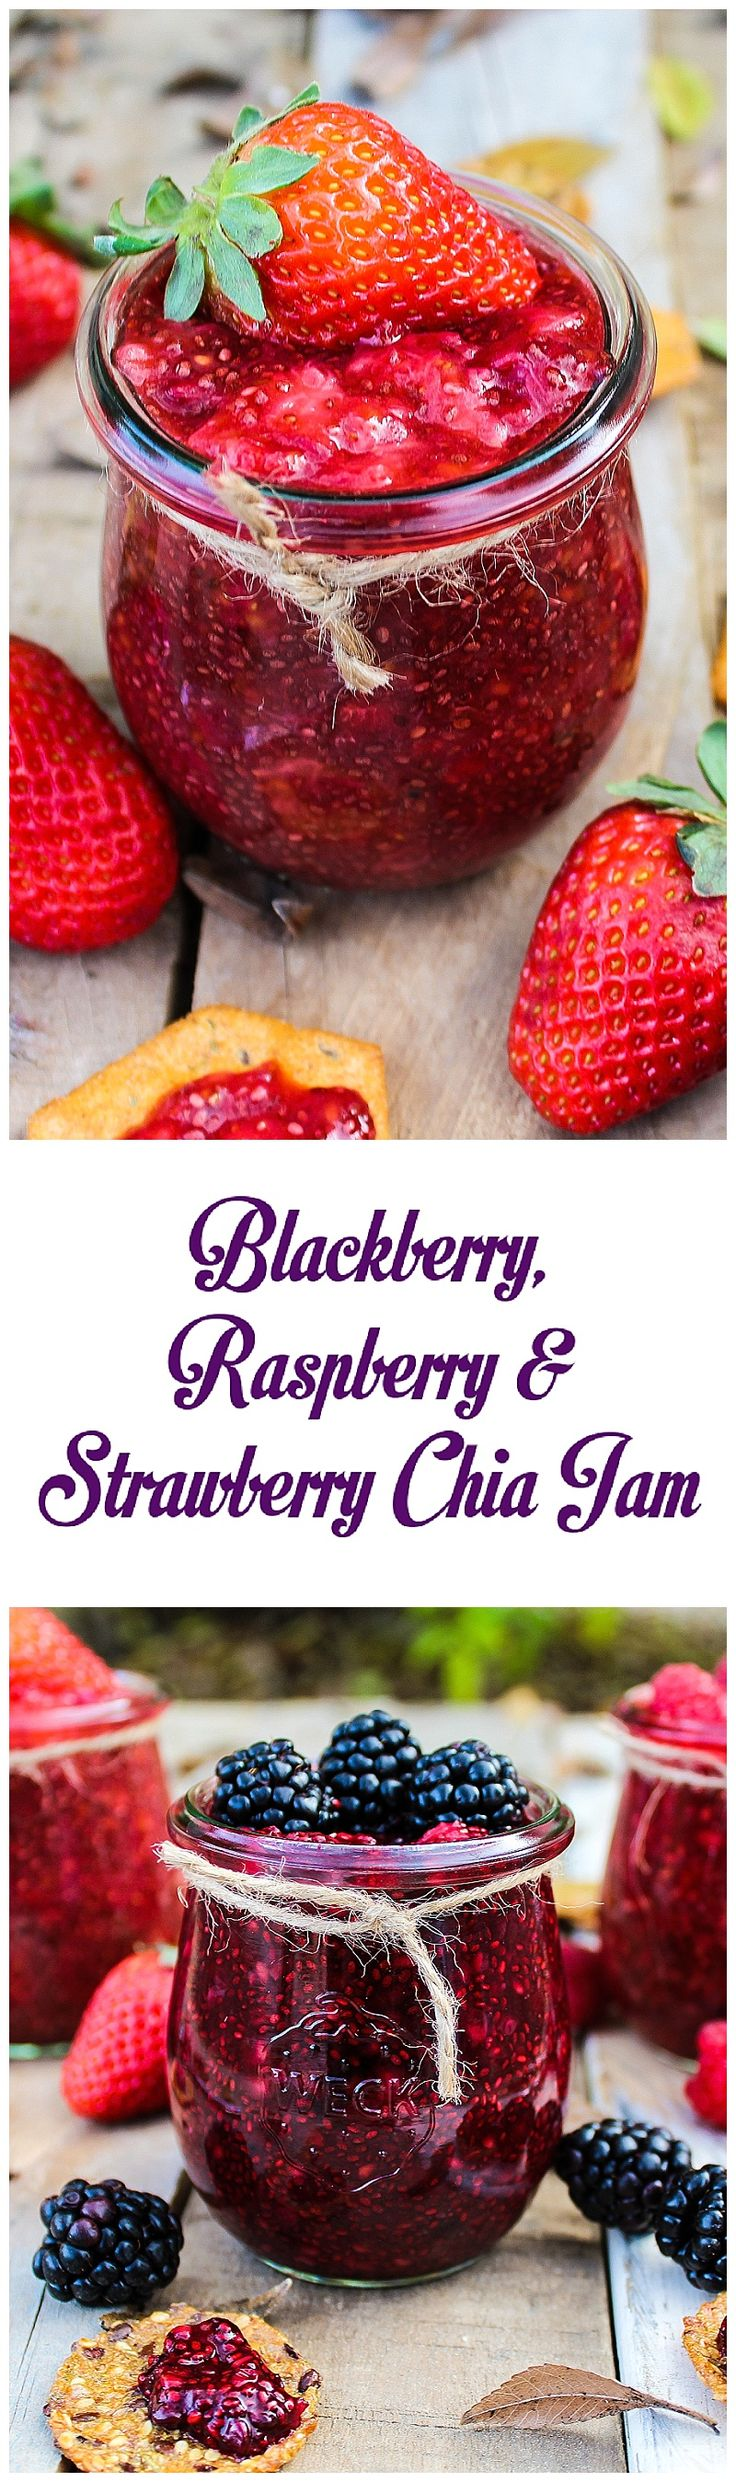 Blackberry, Raspberry & Strawberry Chia Jam - http://veganhuggs.com/bat/